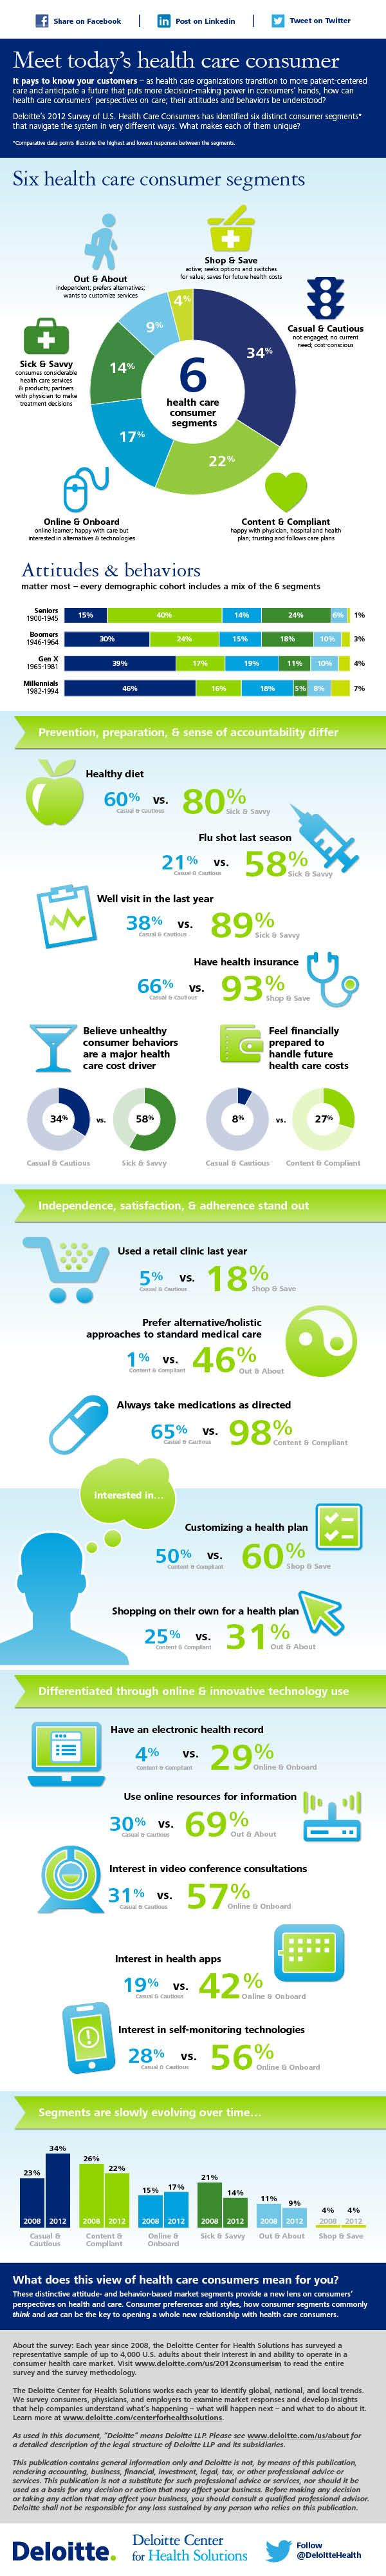 Meet Today's Health Care Consumer - Deloitte Center for Health Solutions created an infographic that examines six health care consumer segments, their preferences and styles, how each segment commonly thinks and acts, how they navigate the system in various ways, and the implications for industry stakeholders.